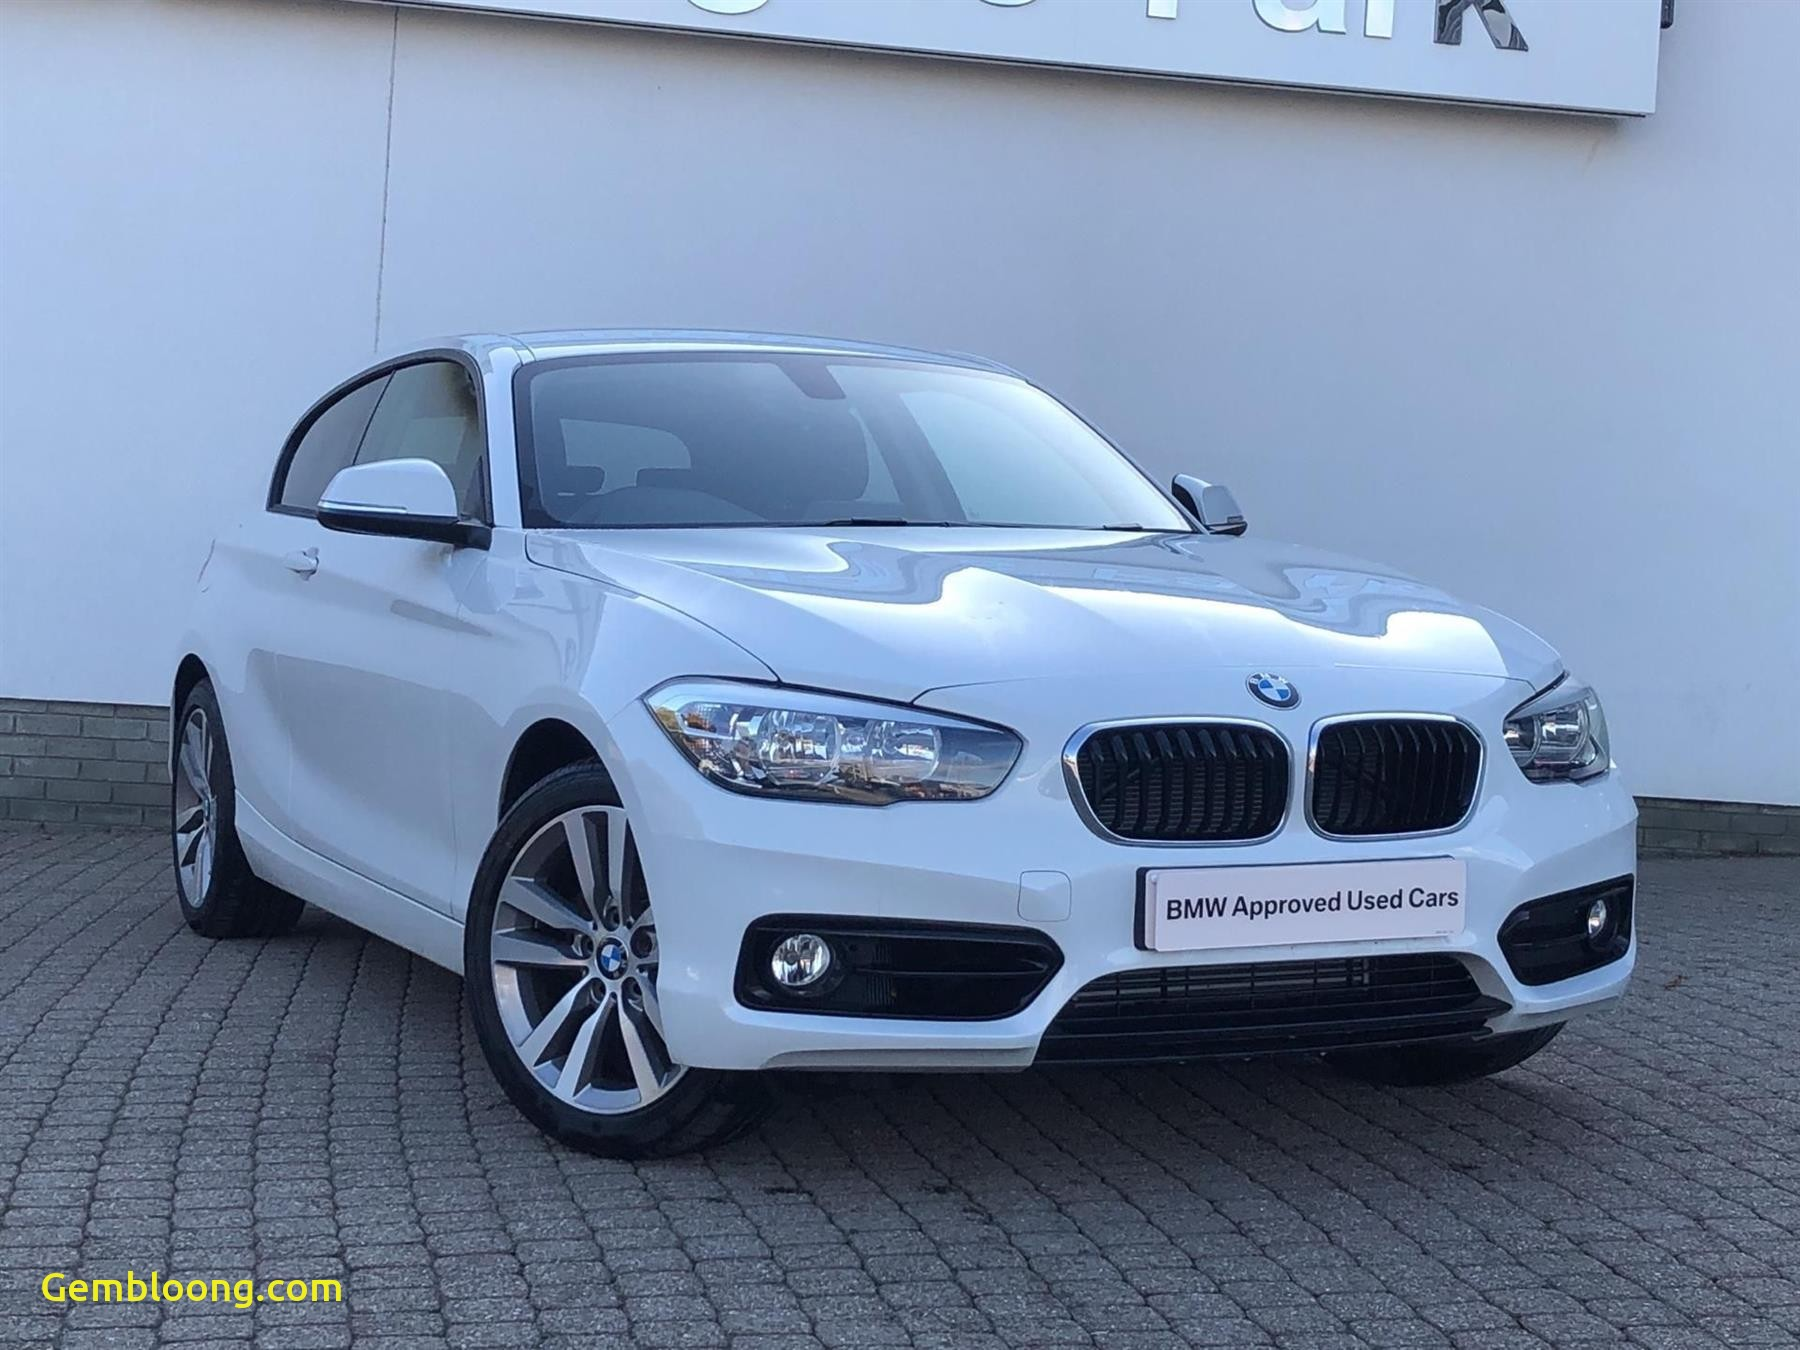 Cars for Sale Near Me Trade In Best Of Used Bmw Cars for Sale with Pistonheads